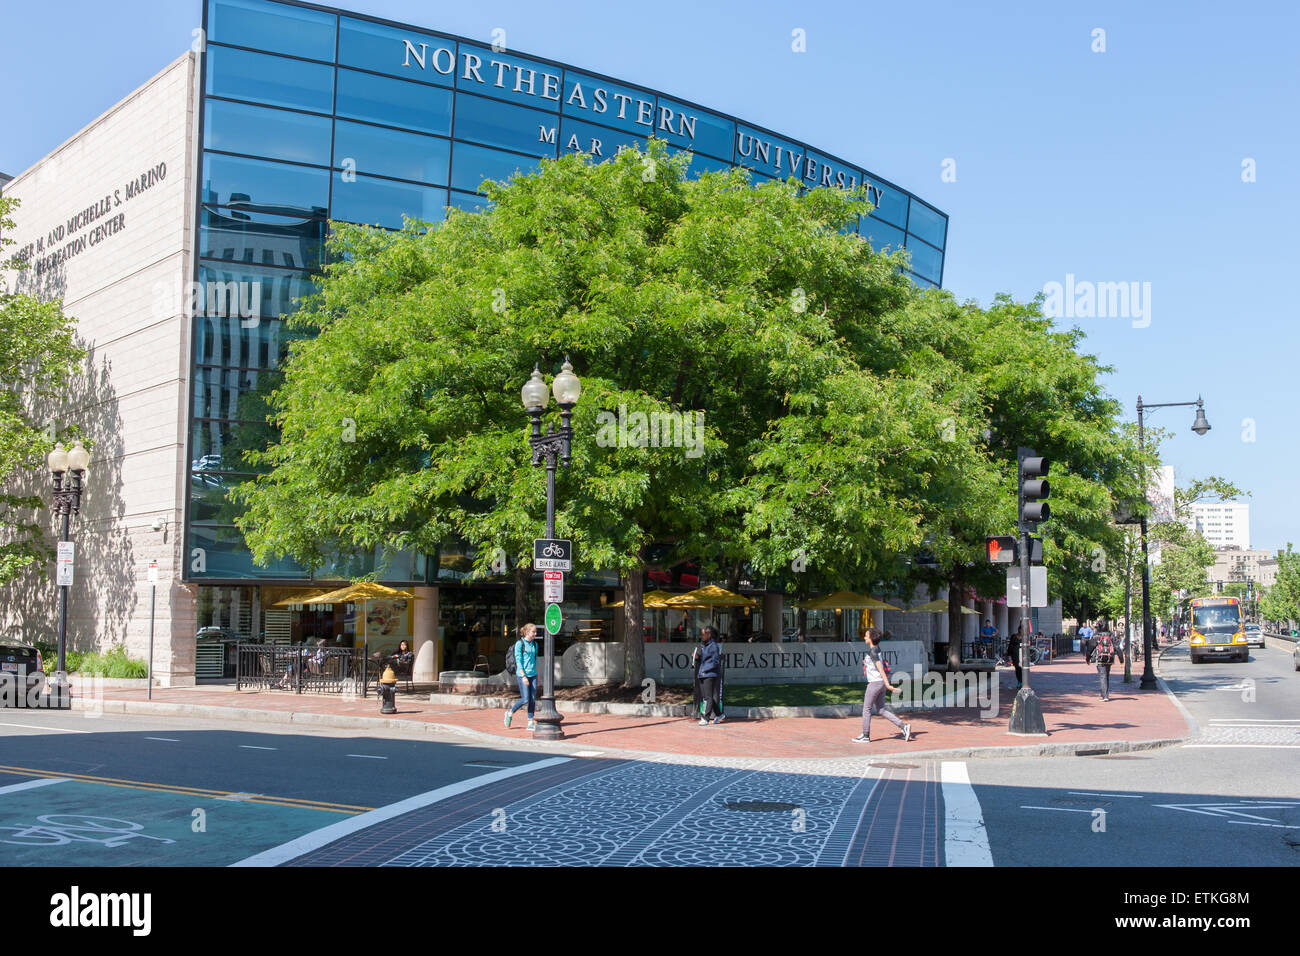 Northeastern University Marino Recreation Center on Huntington Avenue in Boston, Massachusetts. - Stock Image